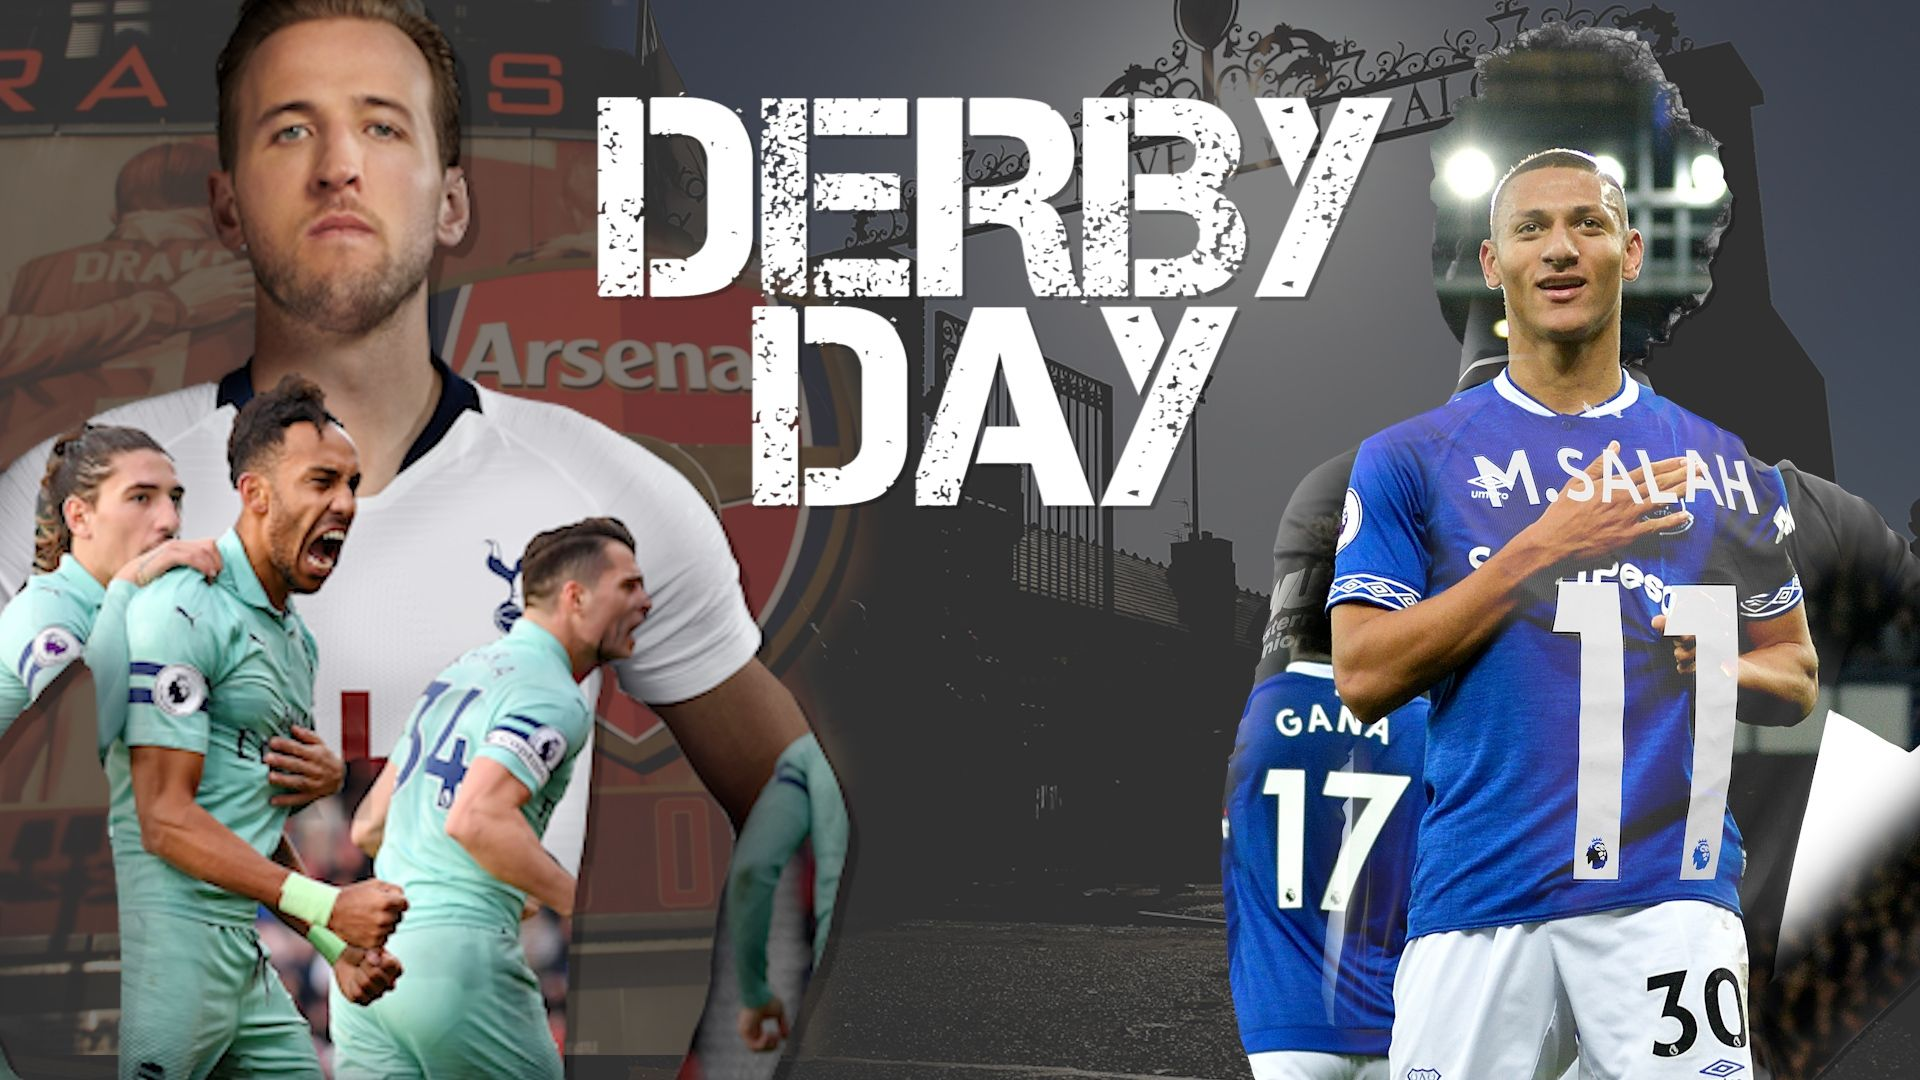 North London vs Merseyside Derby